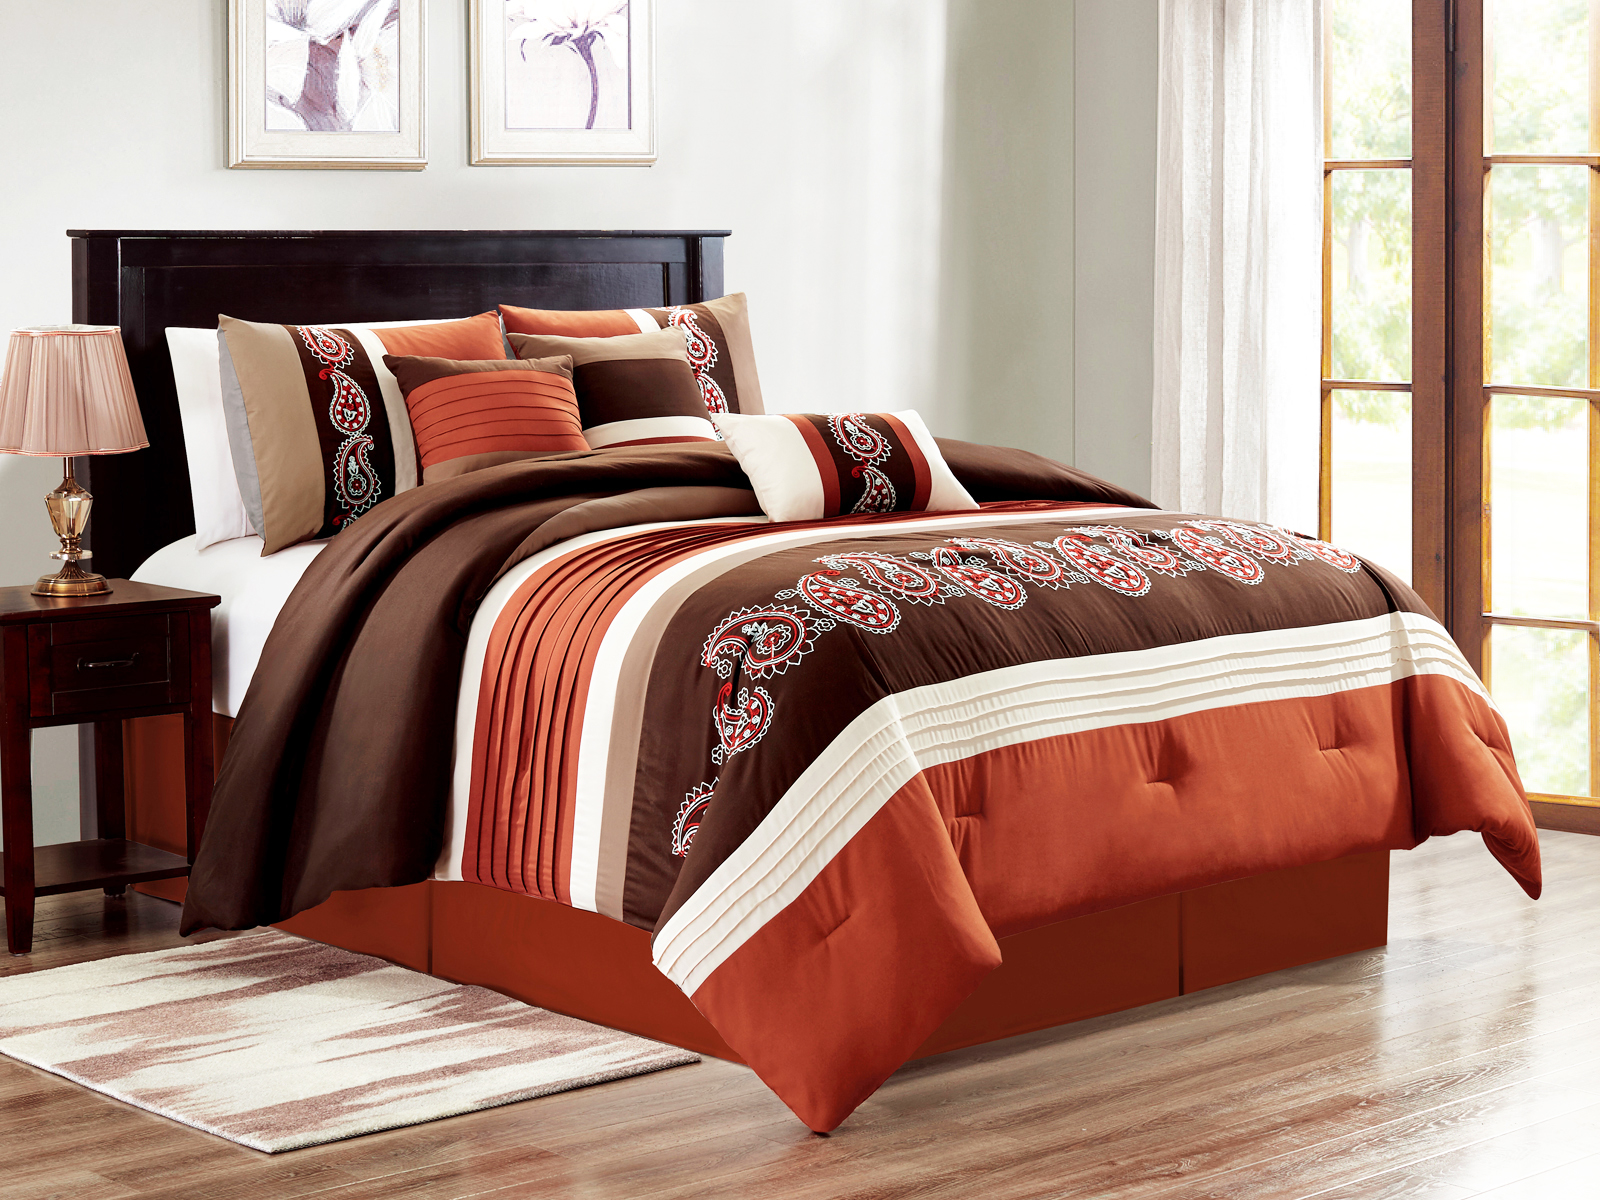 brown bedding comforter rust pc set designs and embroidery geometric fl striped clover